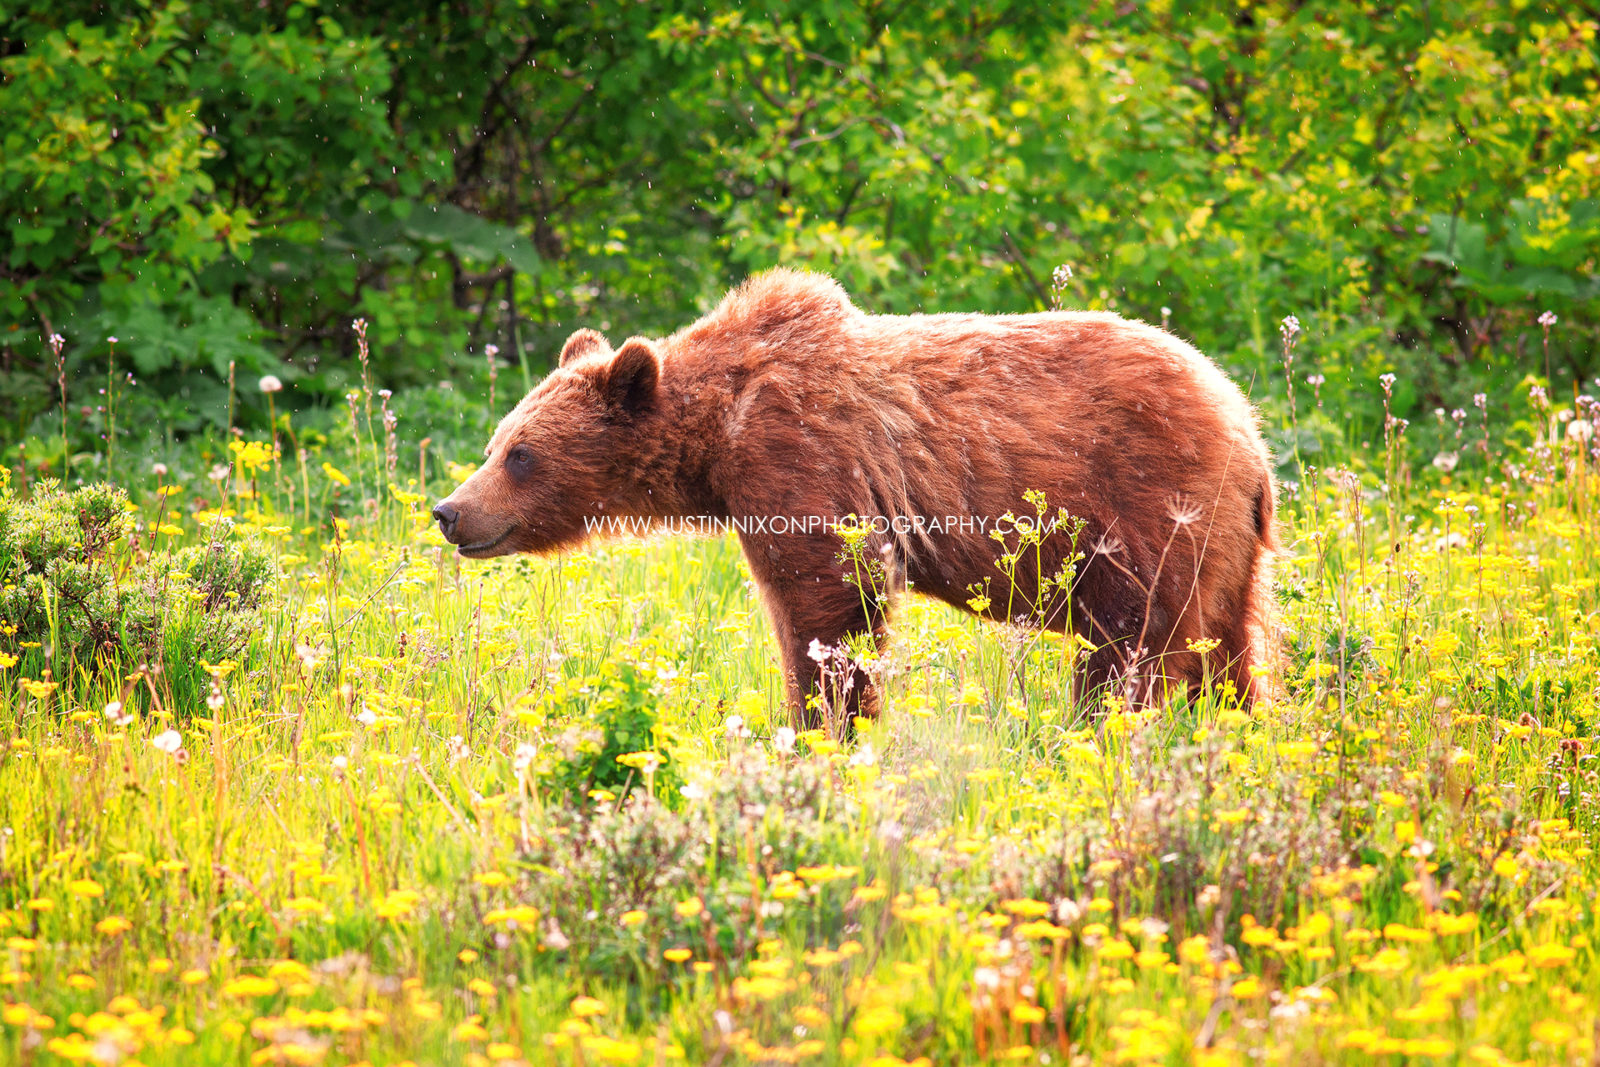 Grizzly in the Wildflowers